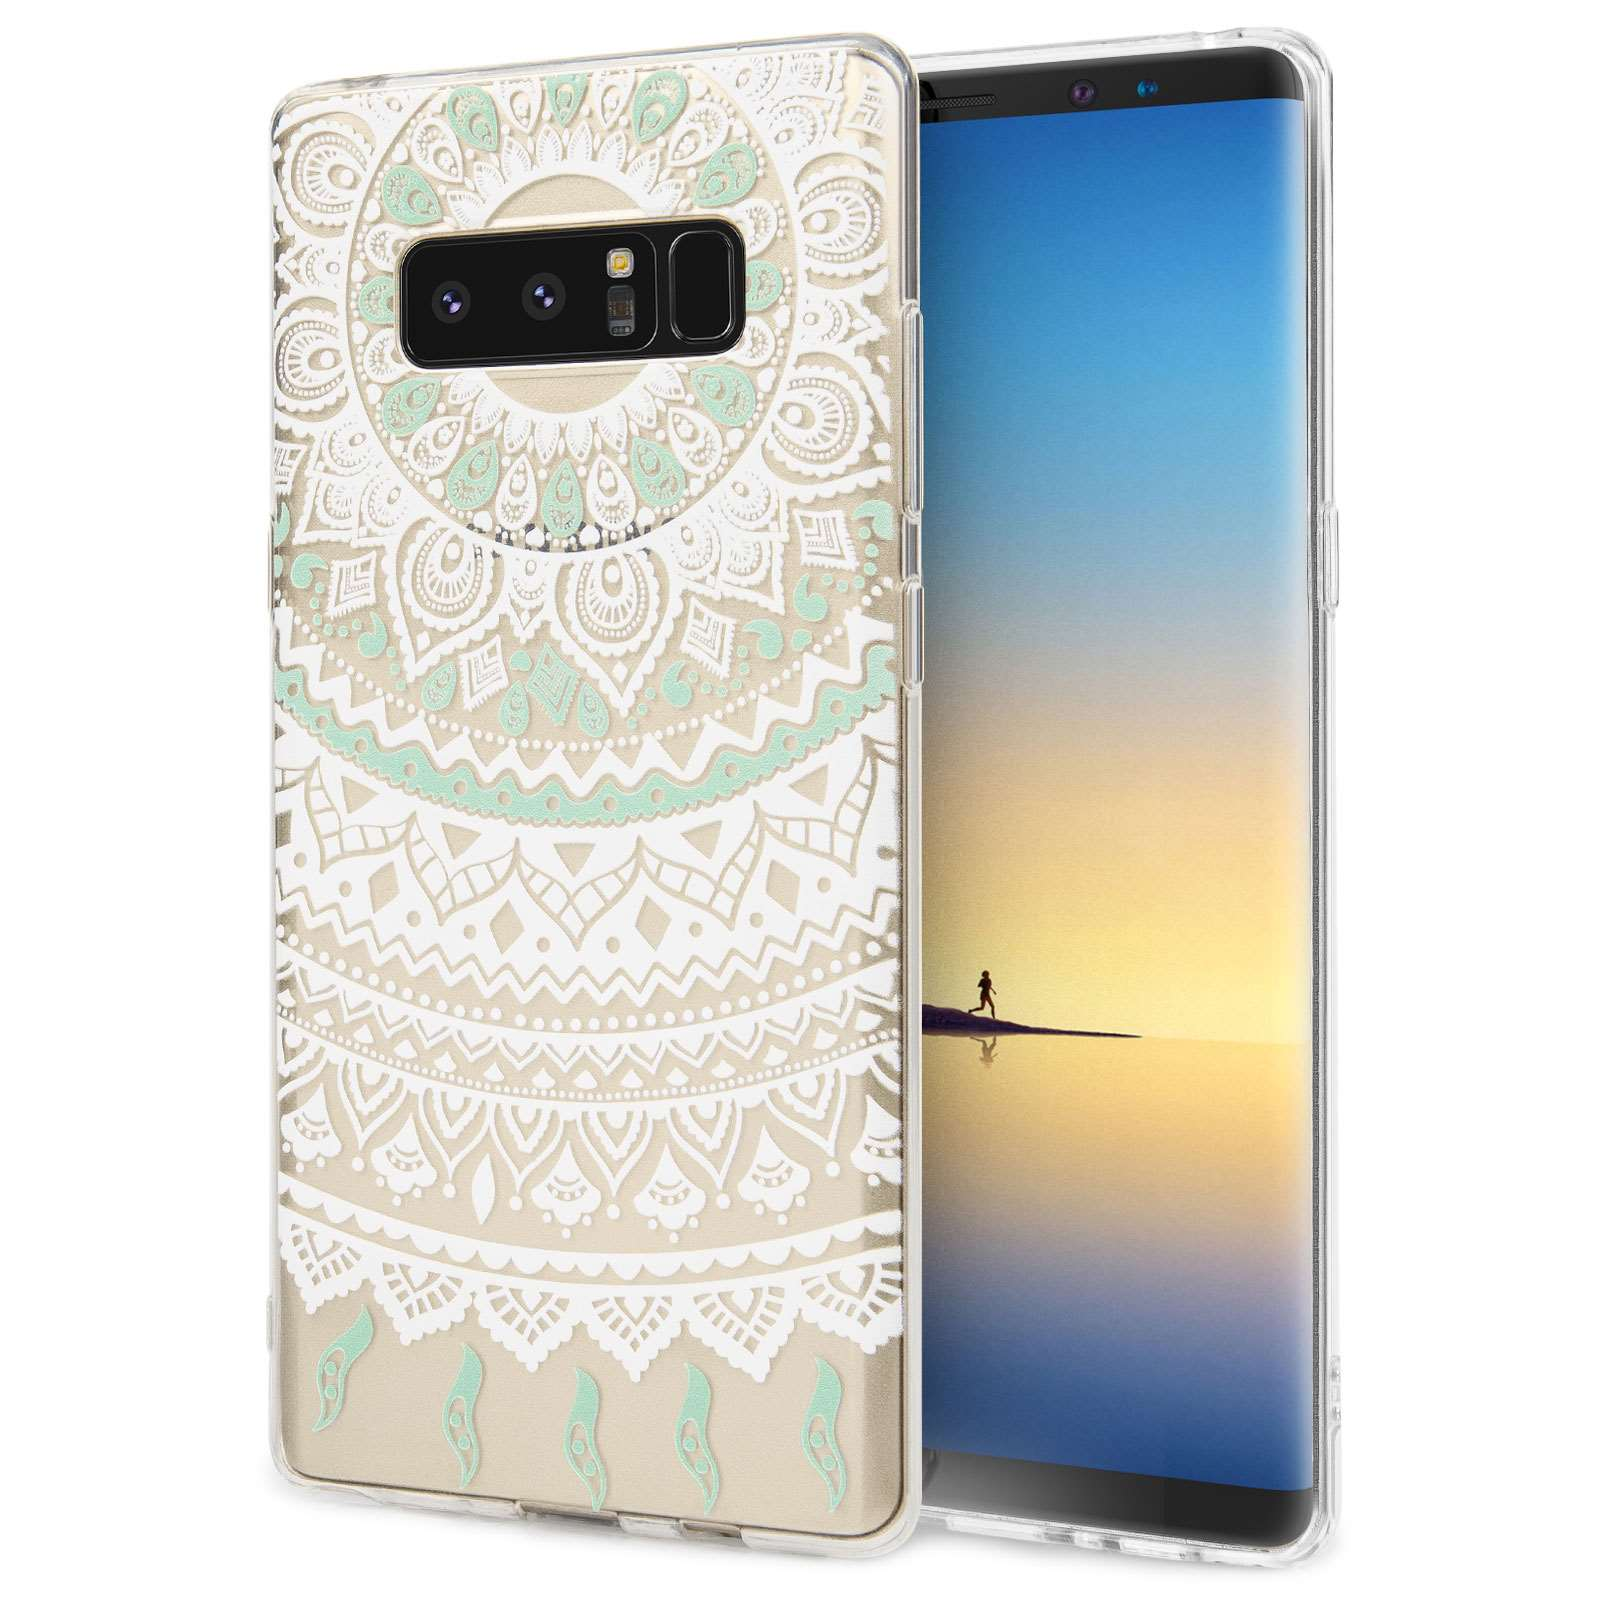 Centopi Θήκη Σιλικόνης Samsung Galaxy Note 8 - Mandala Pattern (CEN-SAM-118)